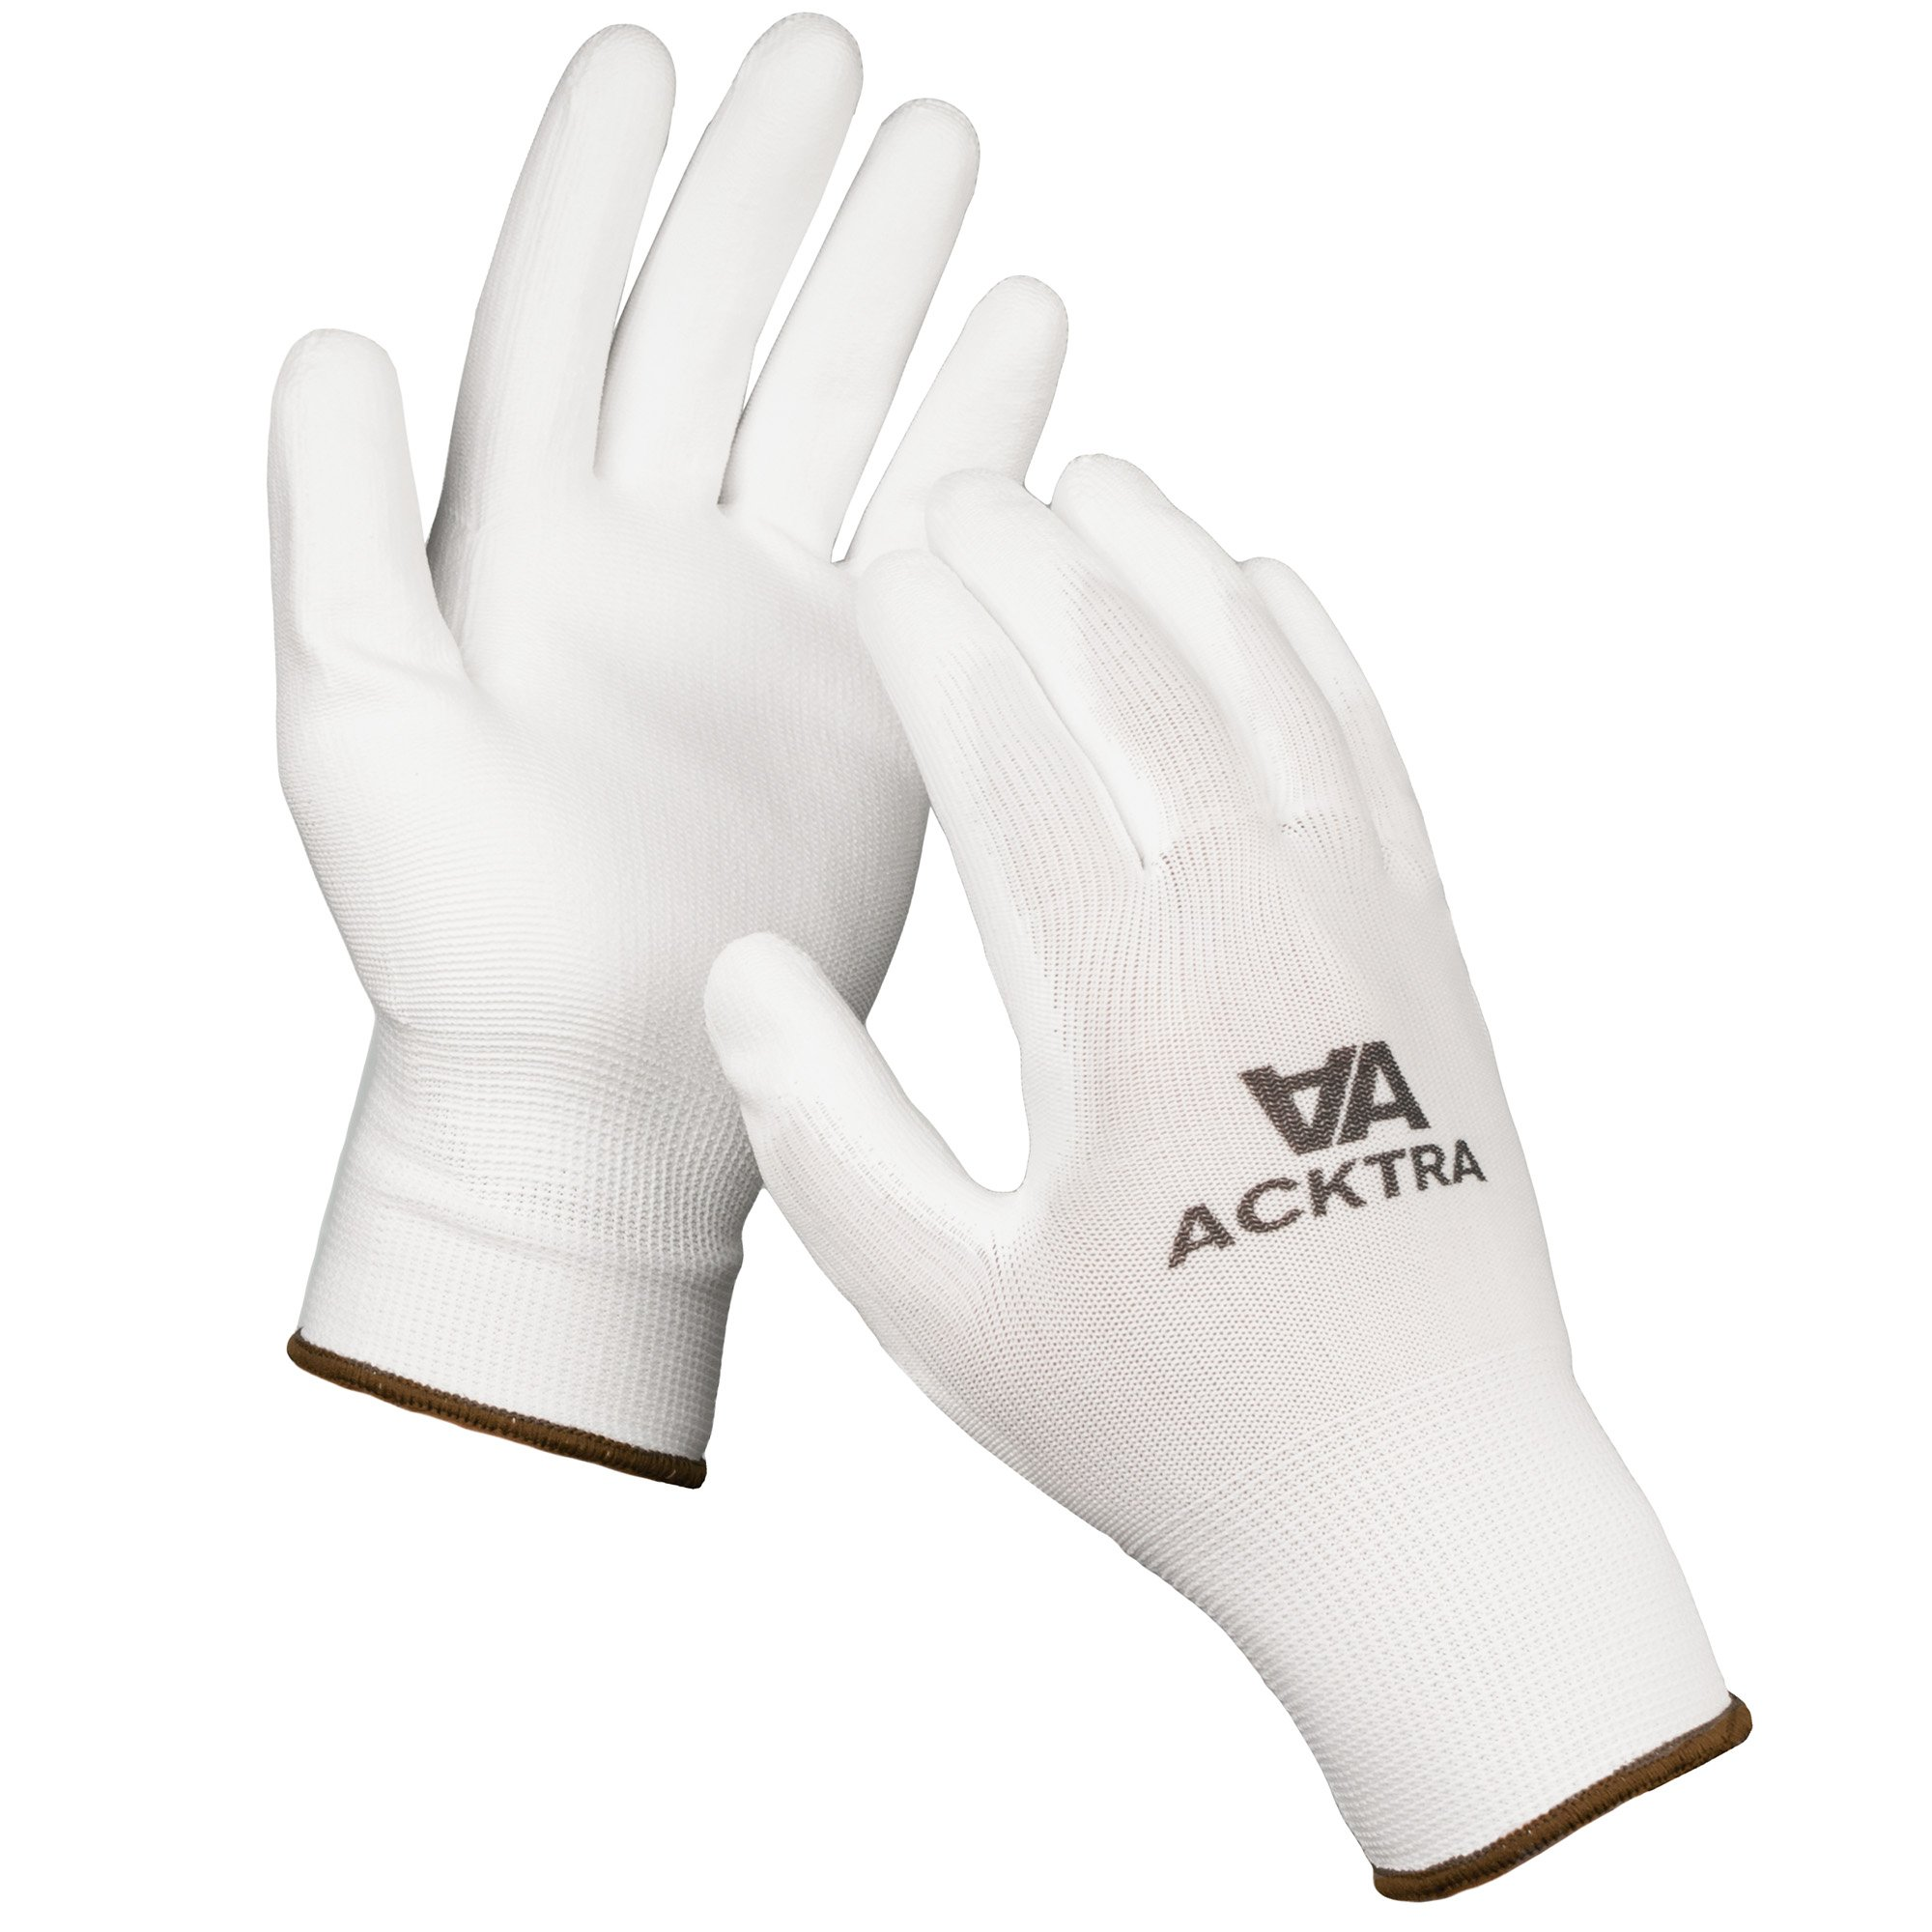 ACKTRA Ultra-Thin Polyurethane (PU) Coated Nylon Safety WORK GLOVES 12 Pairs, Knit Wrist Cuff, for Precision Work, for Men & Women, WG002 Black Polyester, Black Polyurethane, Small 3